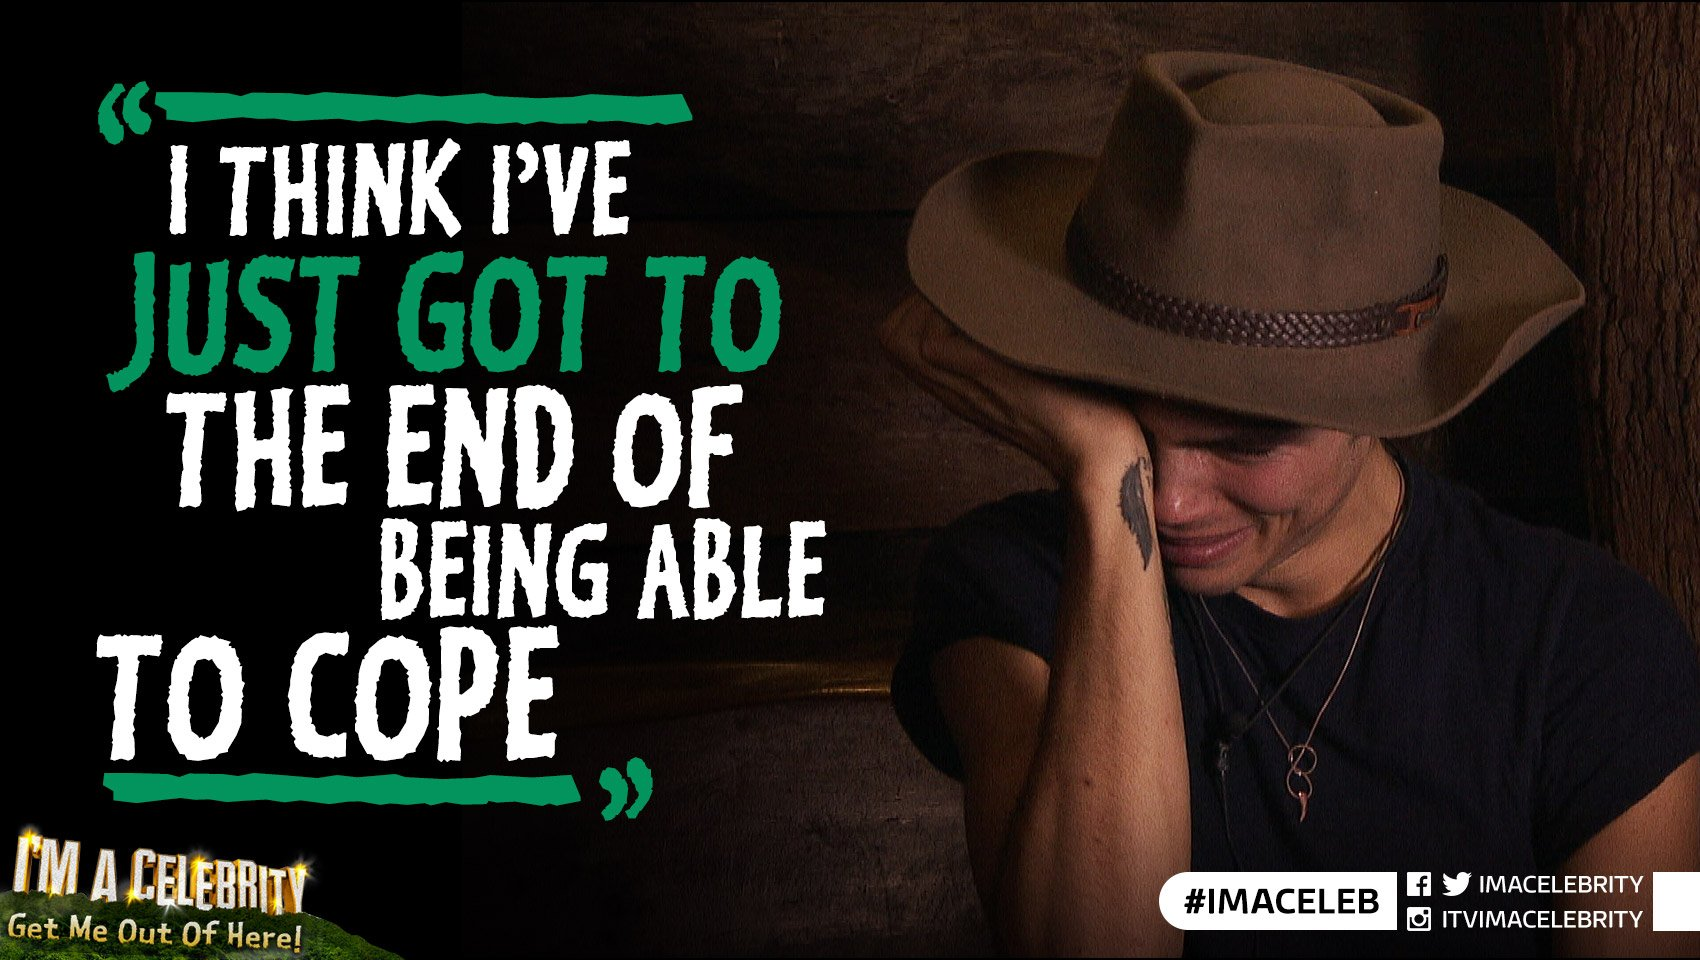 Poor @higeorgeshelley is having a down day in the Jungle... #ImACeleb https://t.co/Yo1TwNaCET